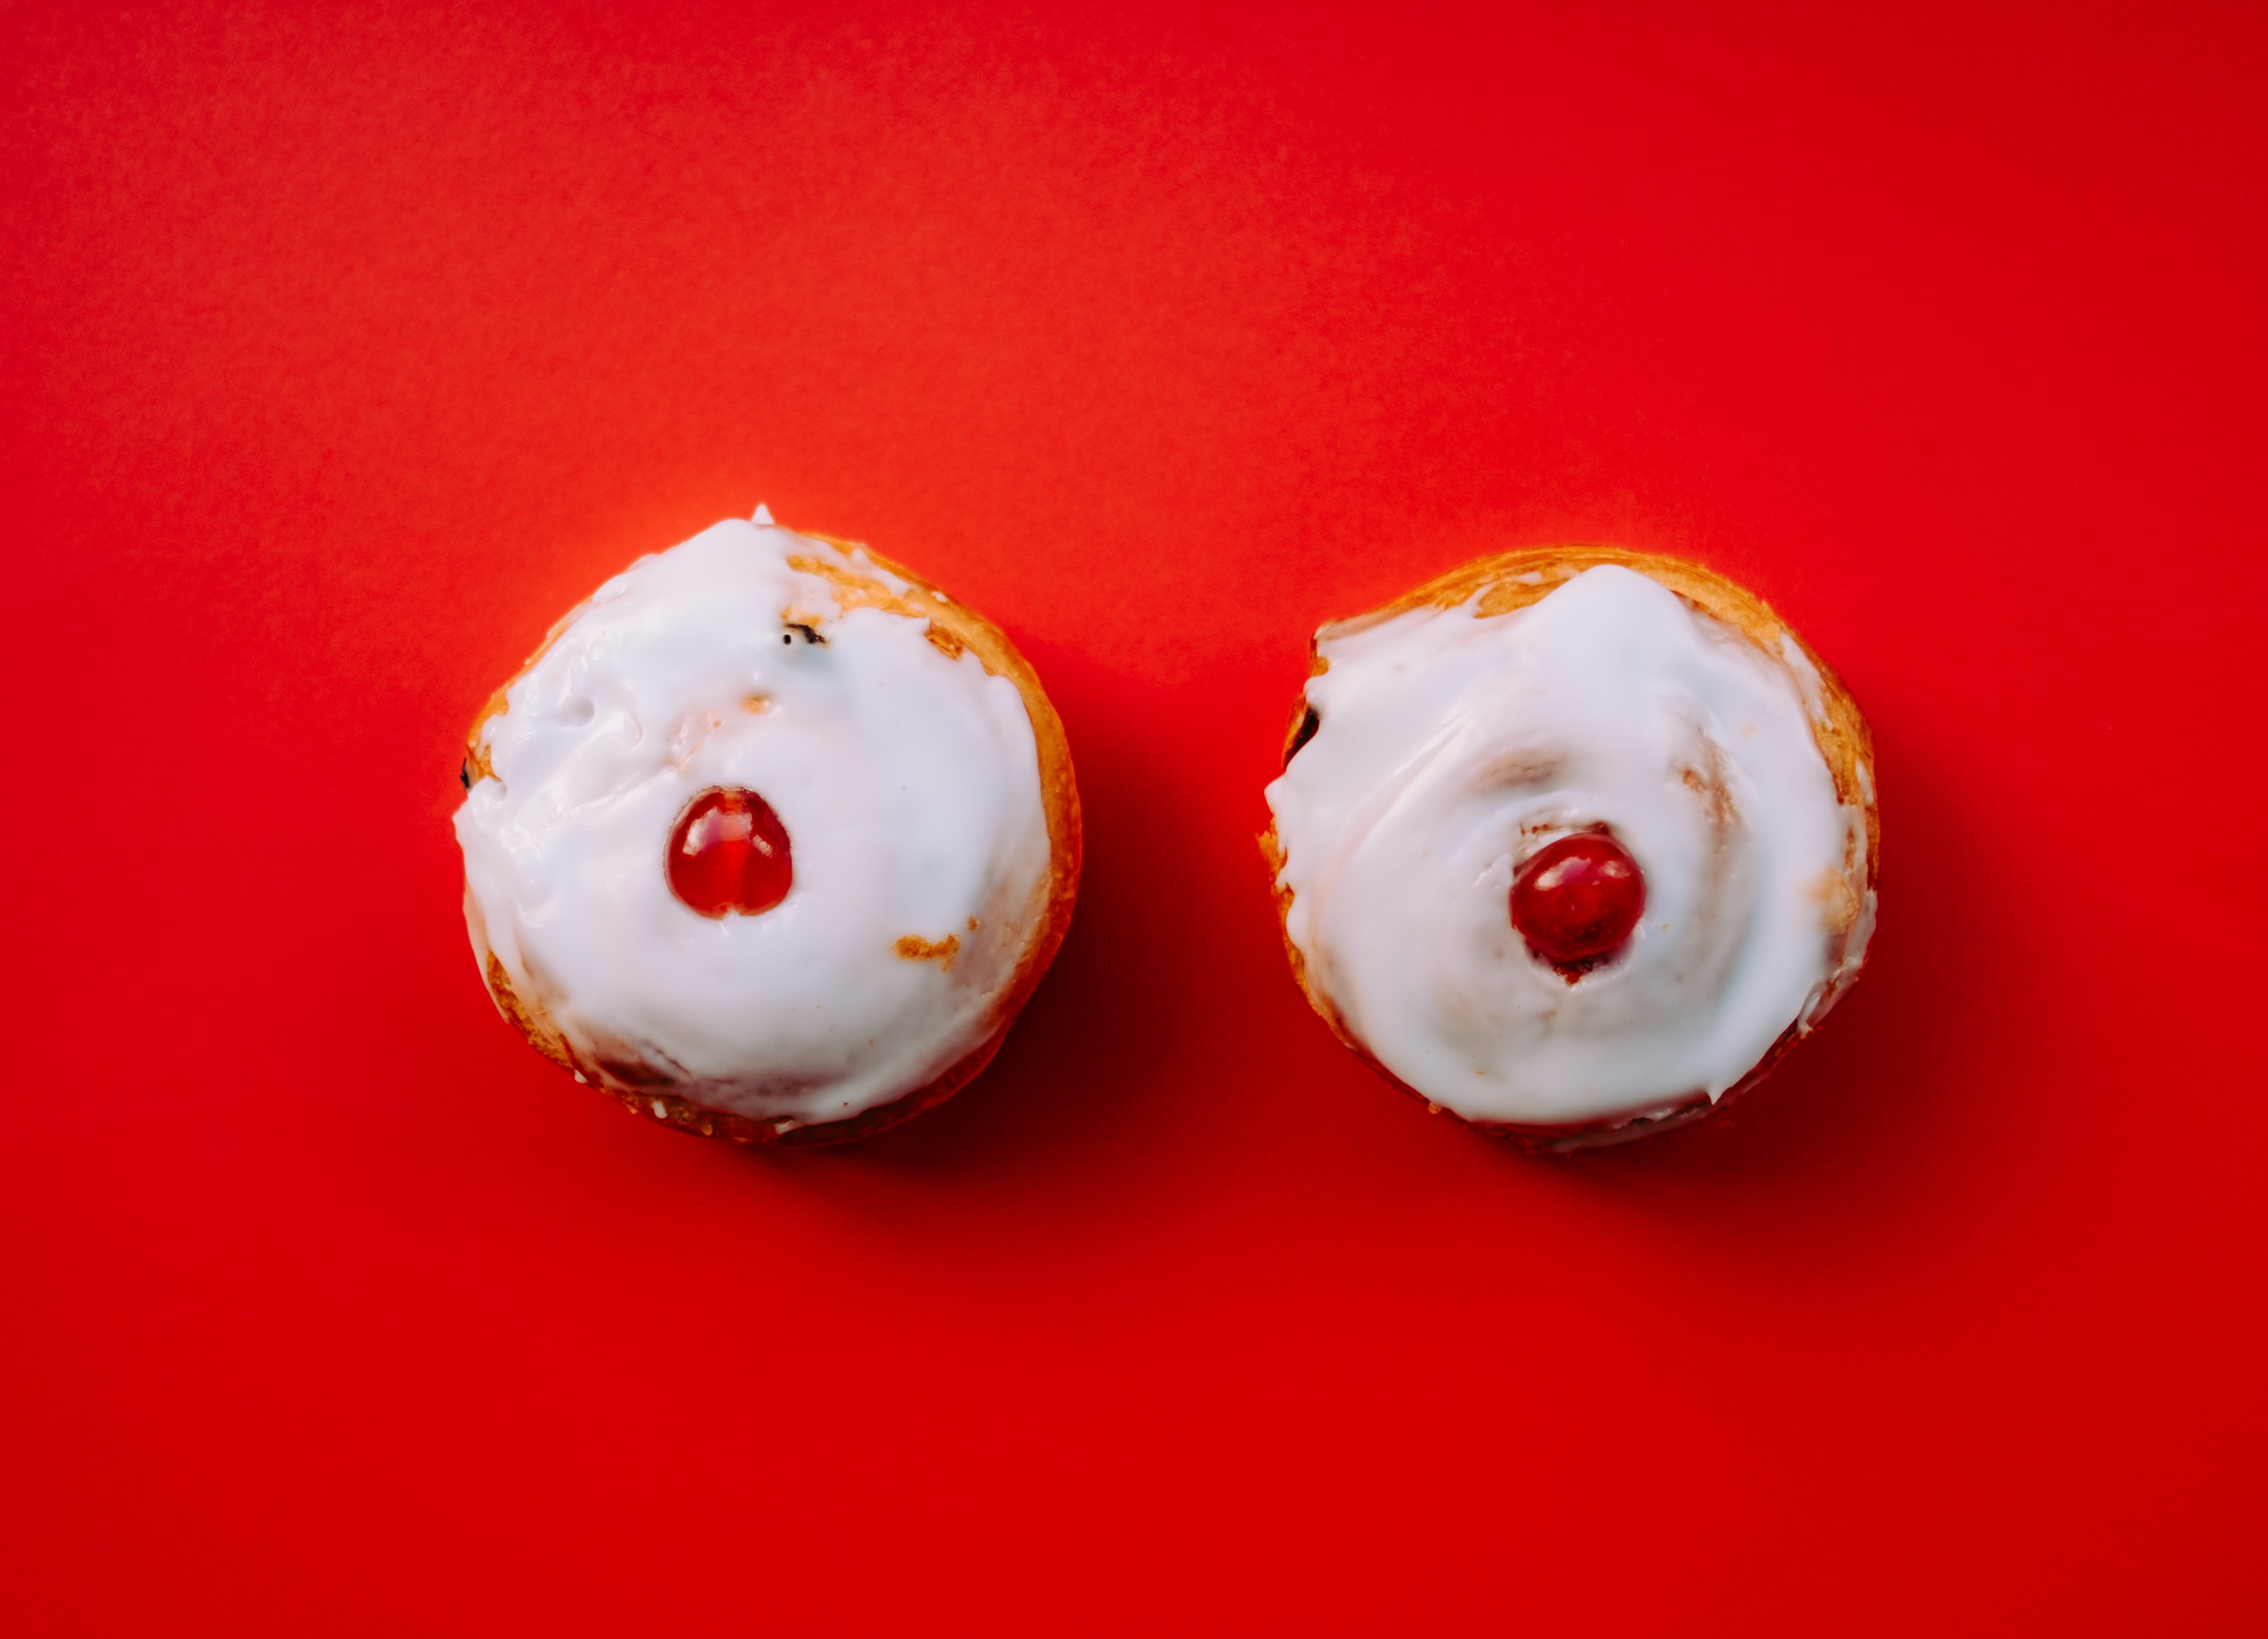 two white frosted cupcakes with cherry toppings